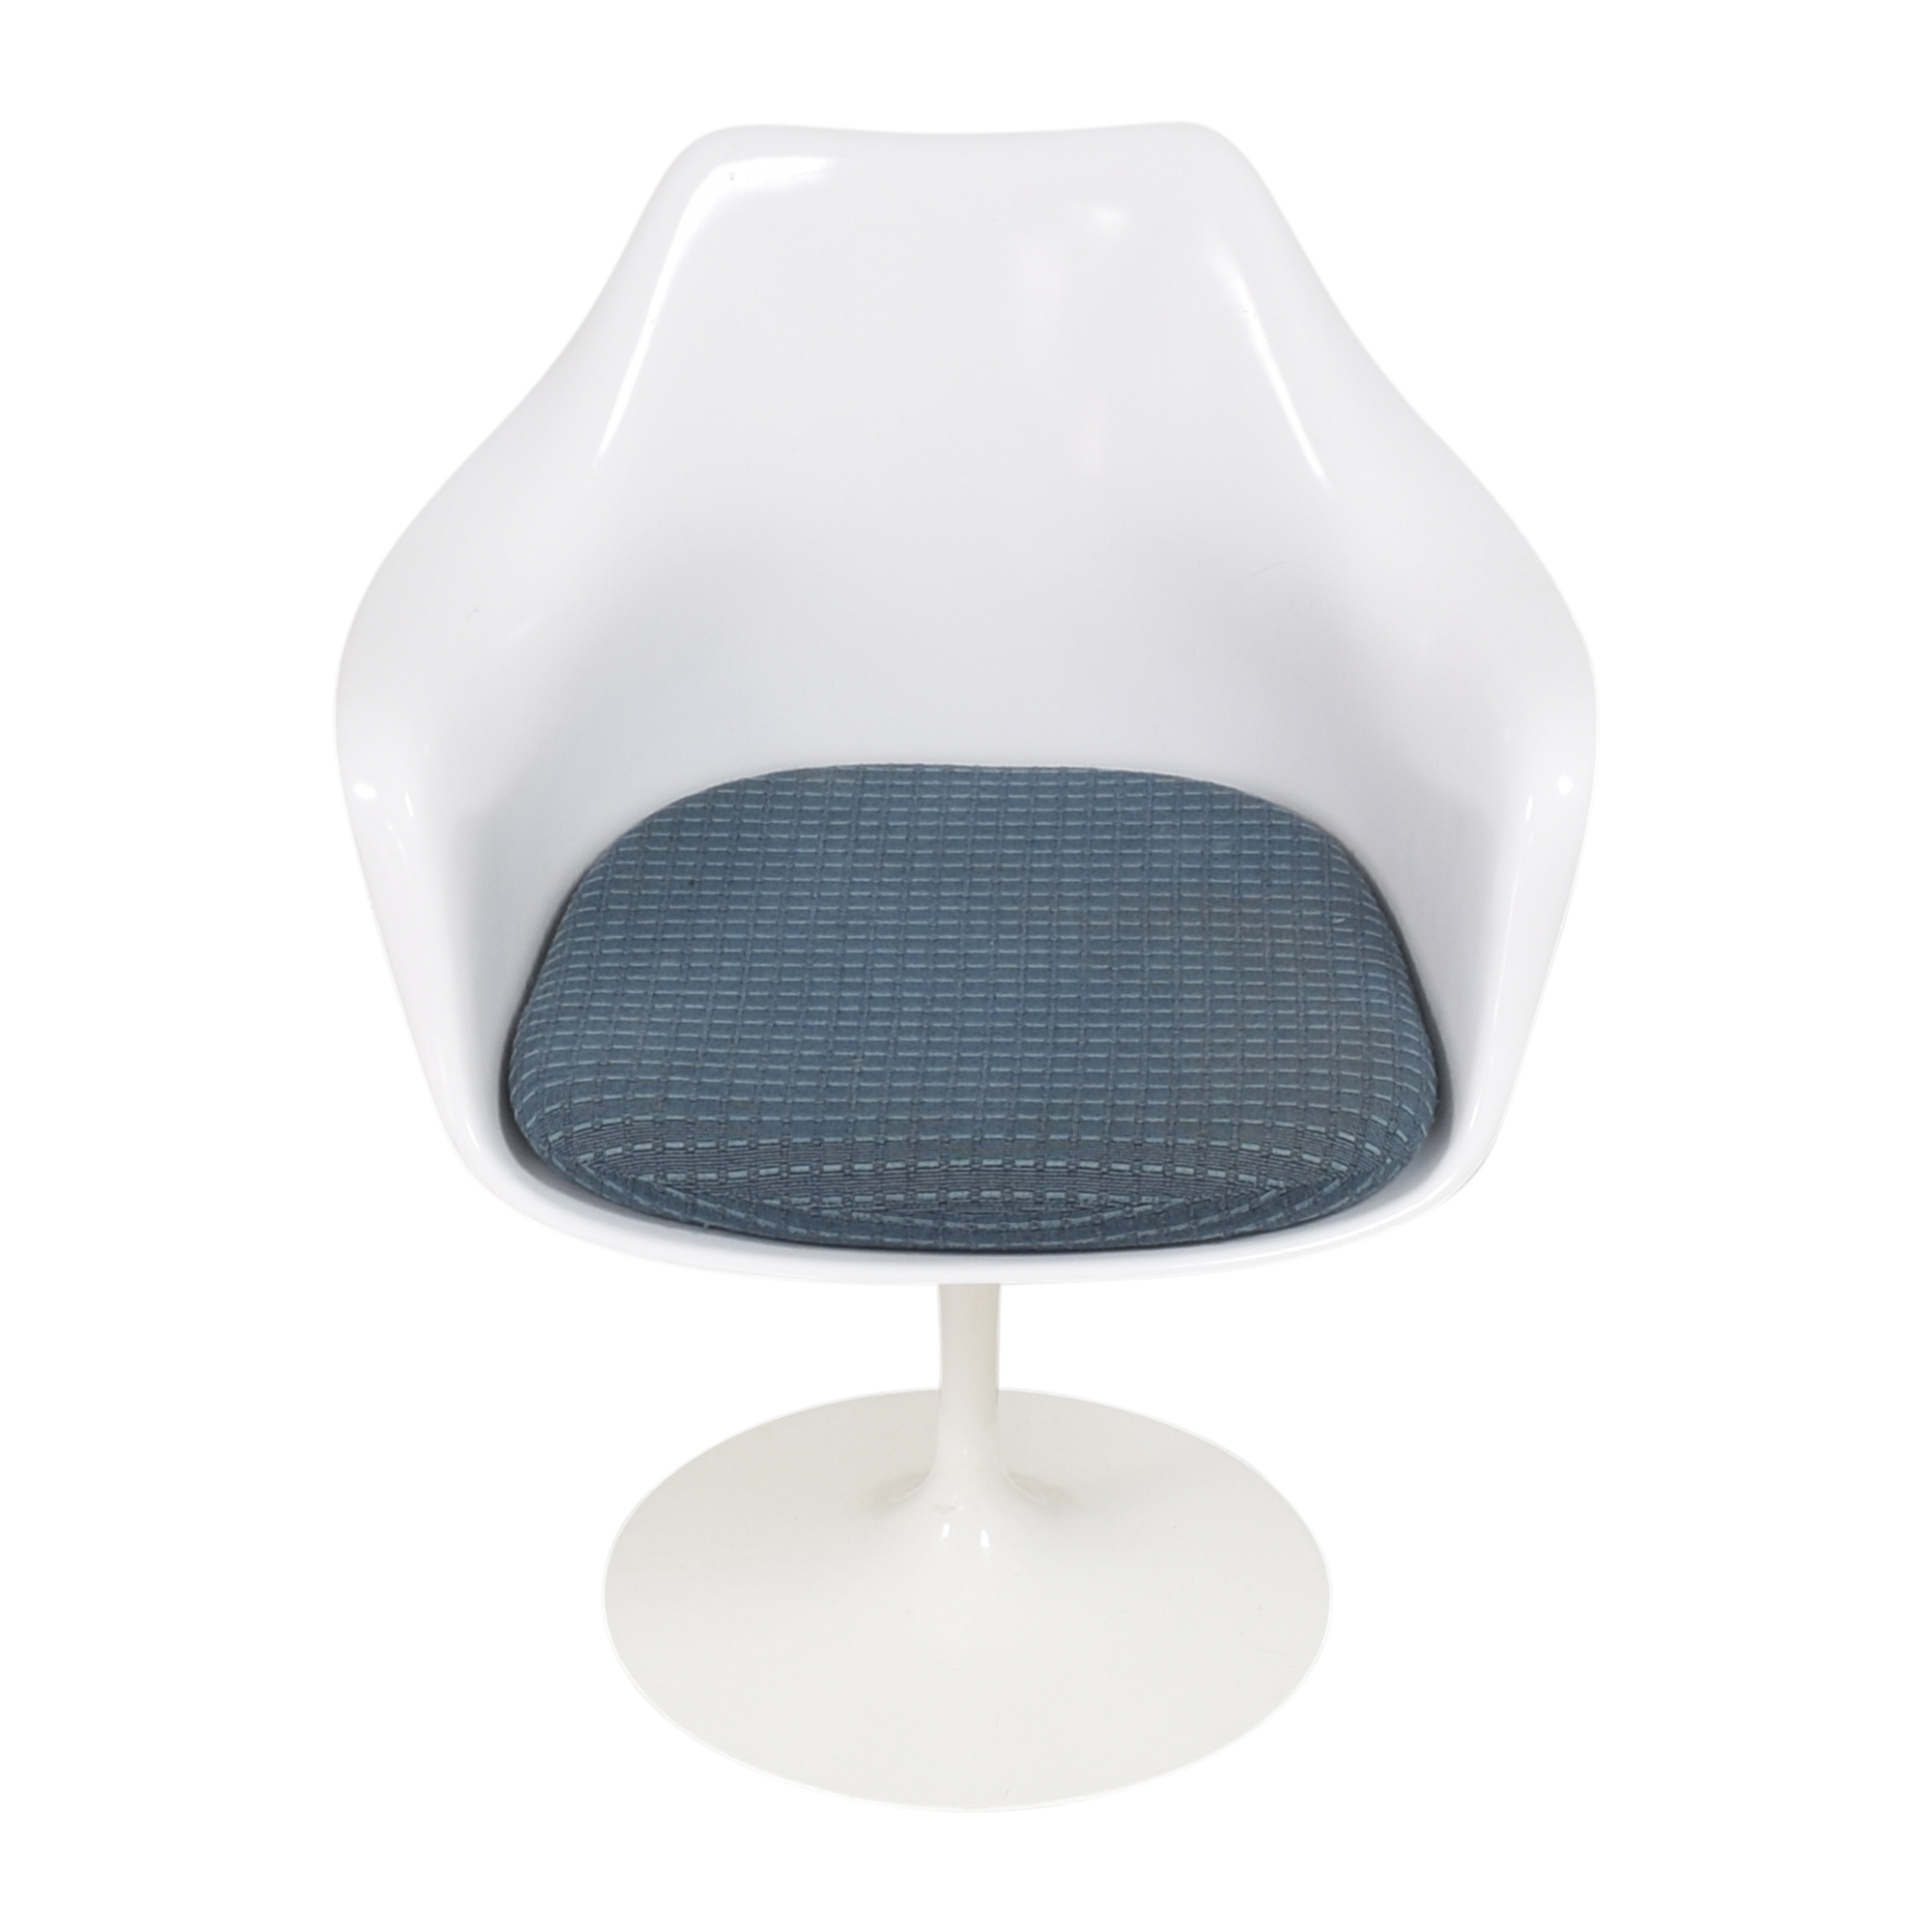 Knoll Knoll Tulip Eero Saarinen Armchair on sale